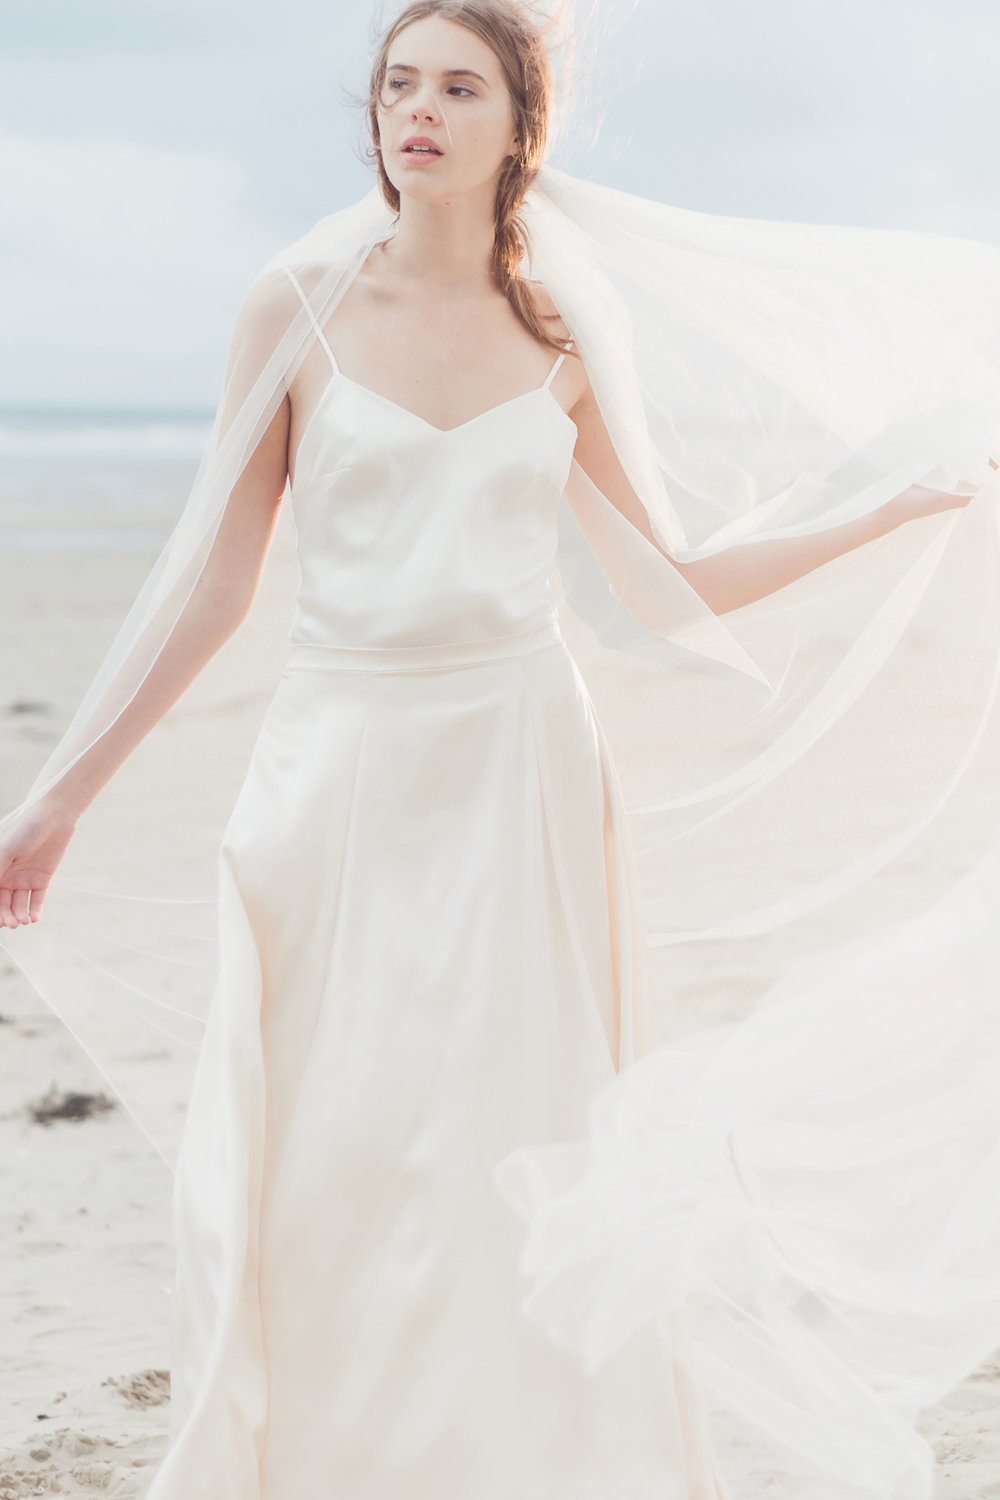 Kate-Beaumont-Wedding-Dresses-Formby-Beach-Emma-Pilkington-47.jpg